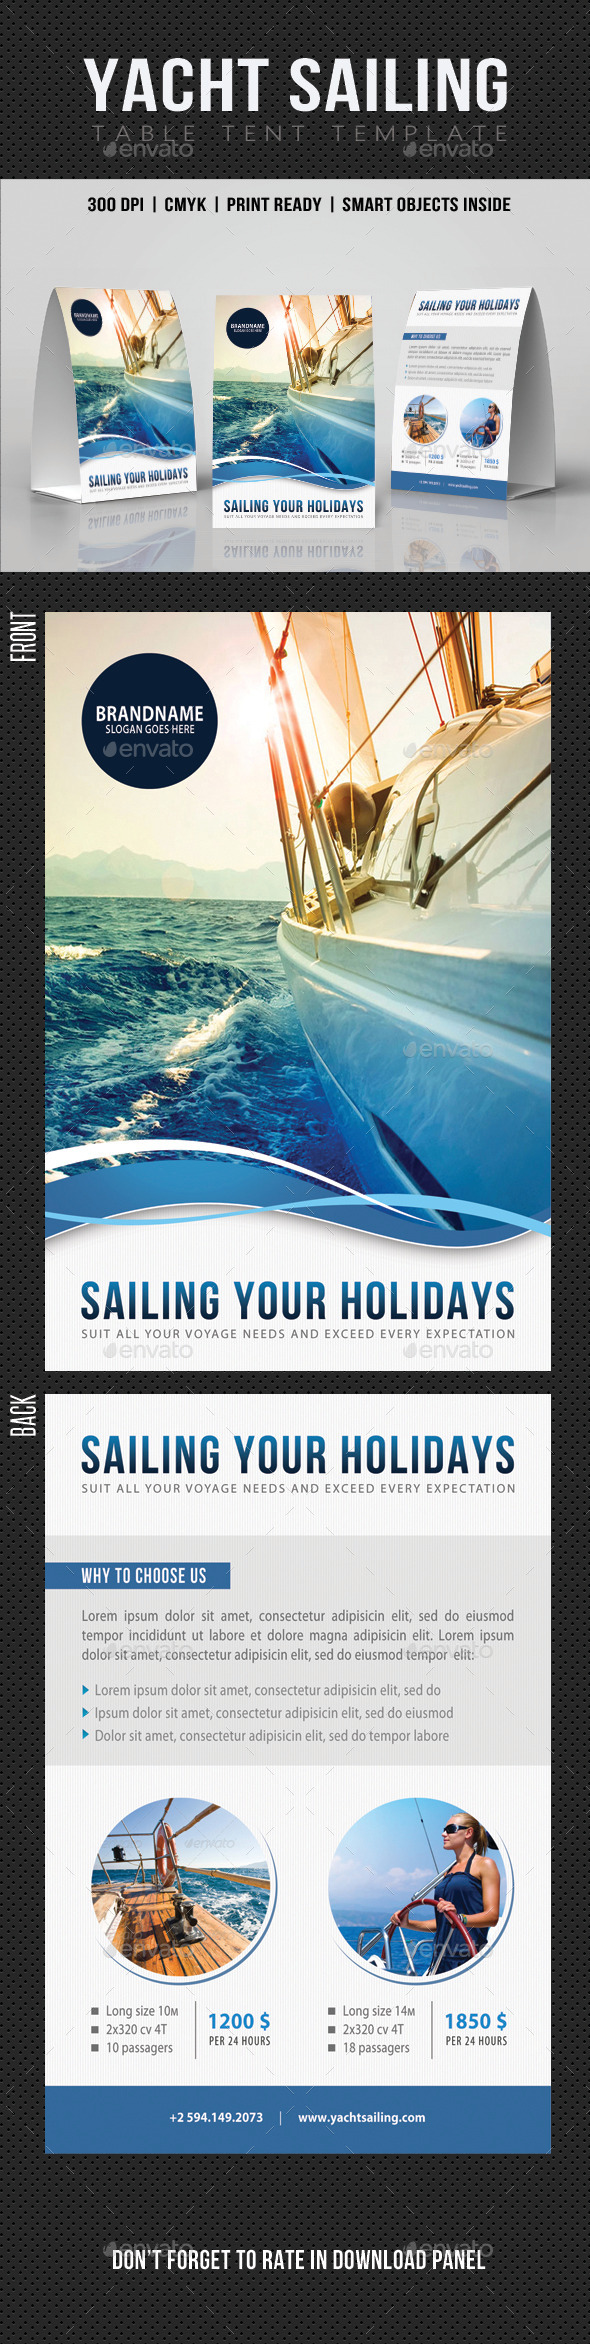 Sailing Yacht Travel Table Tent V05 - Miscellaneous Print Templates